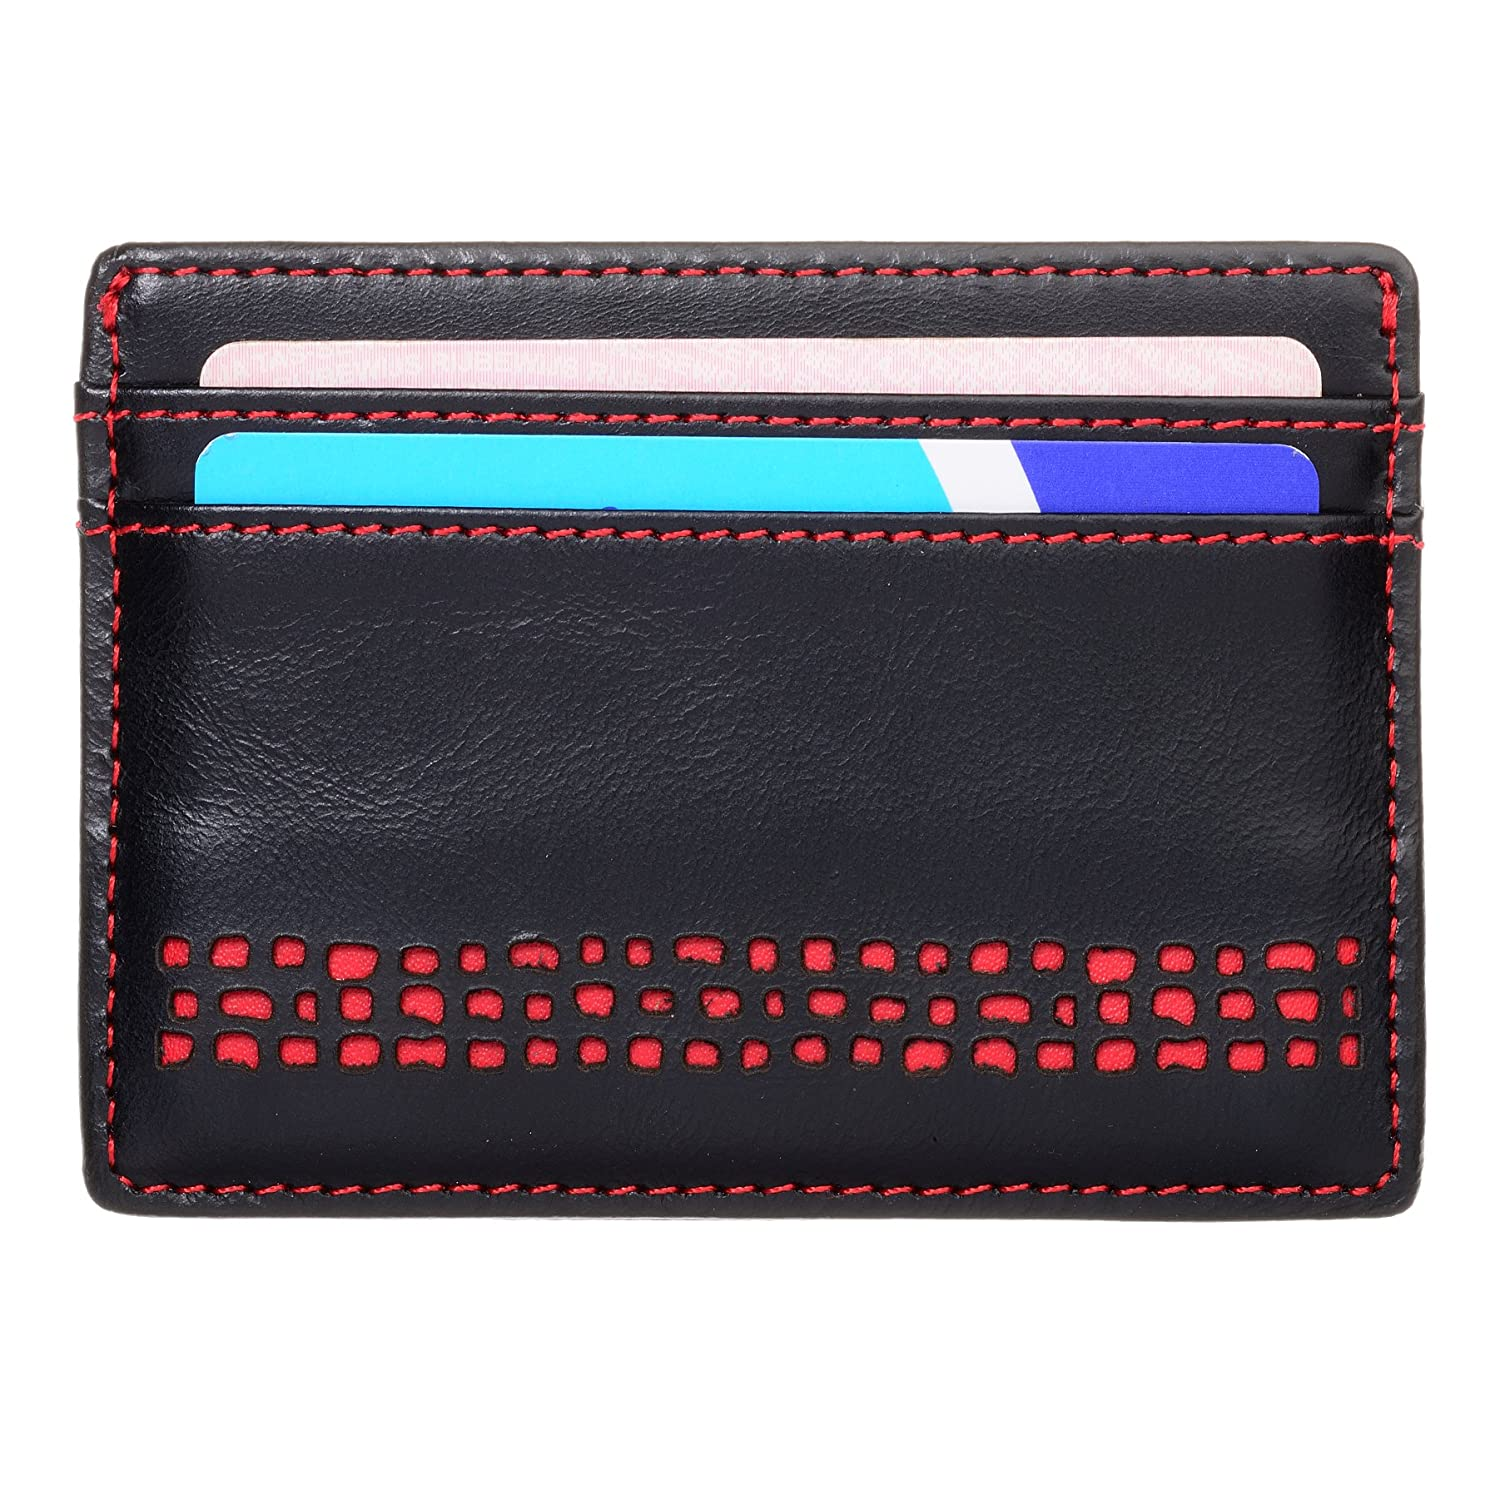 Genuine Leather Mens Credit Card Holder. RFID Blocking. 5 Pockets. Slim Design. The Pecu by Ed Hicks in Vintage Black Real Leather with Red Detailing. Pecu Leather Mens Credit Card Holder